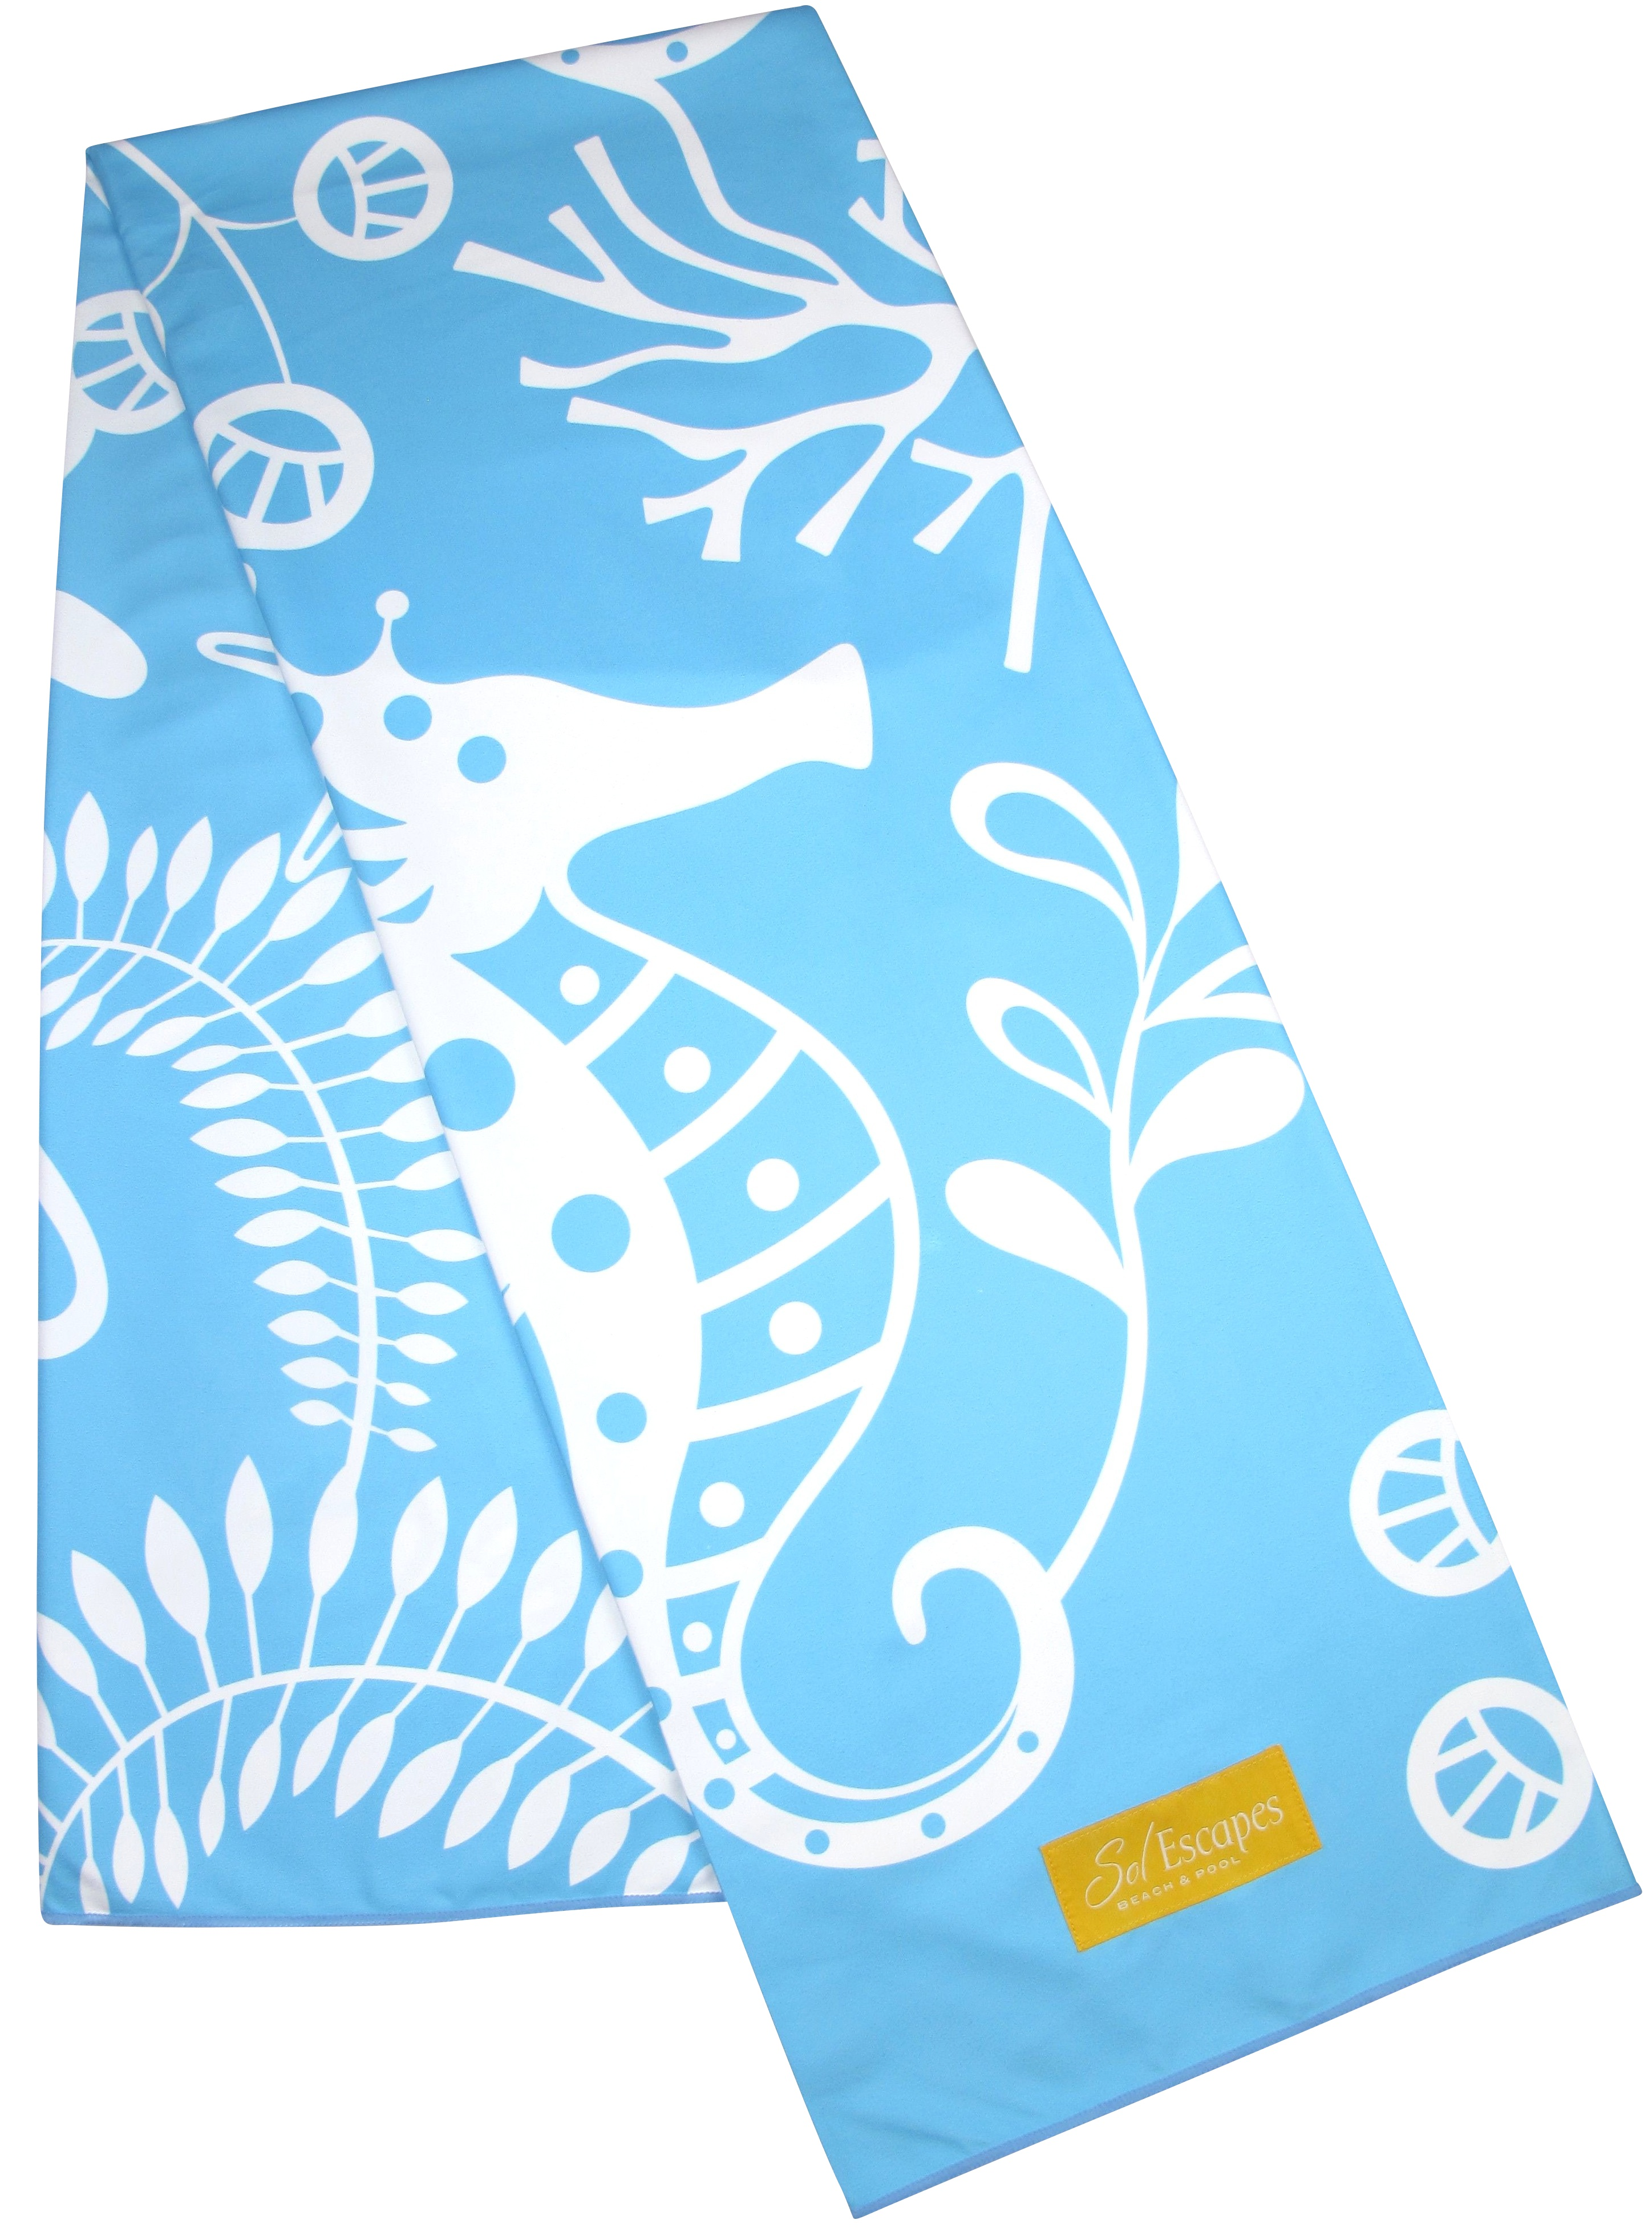 Resort Collection Beach Towels